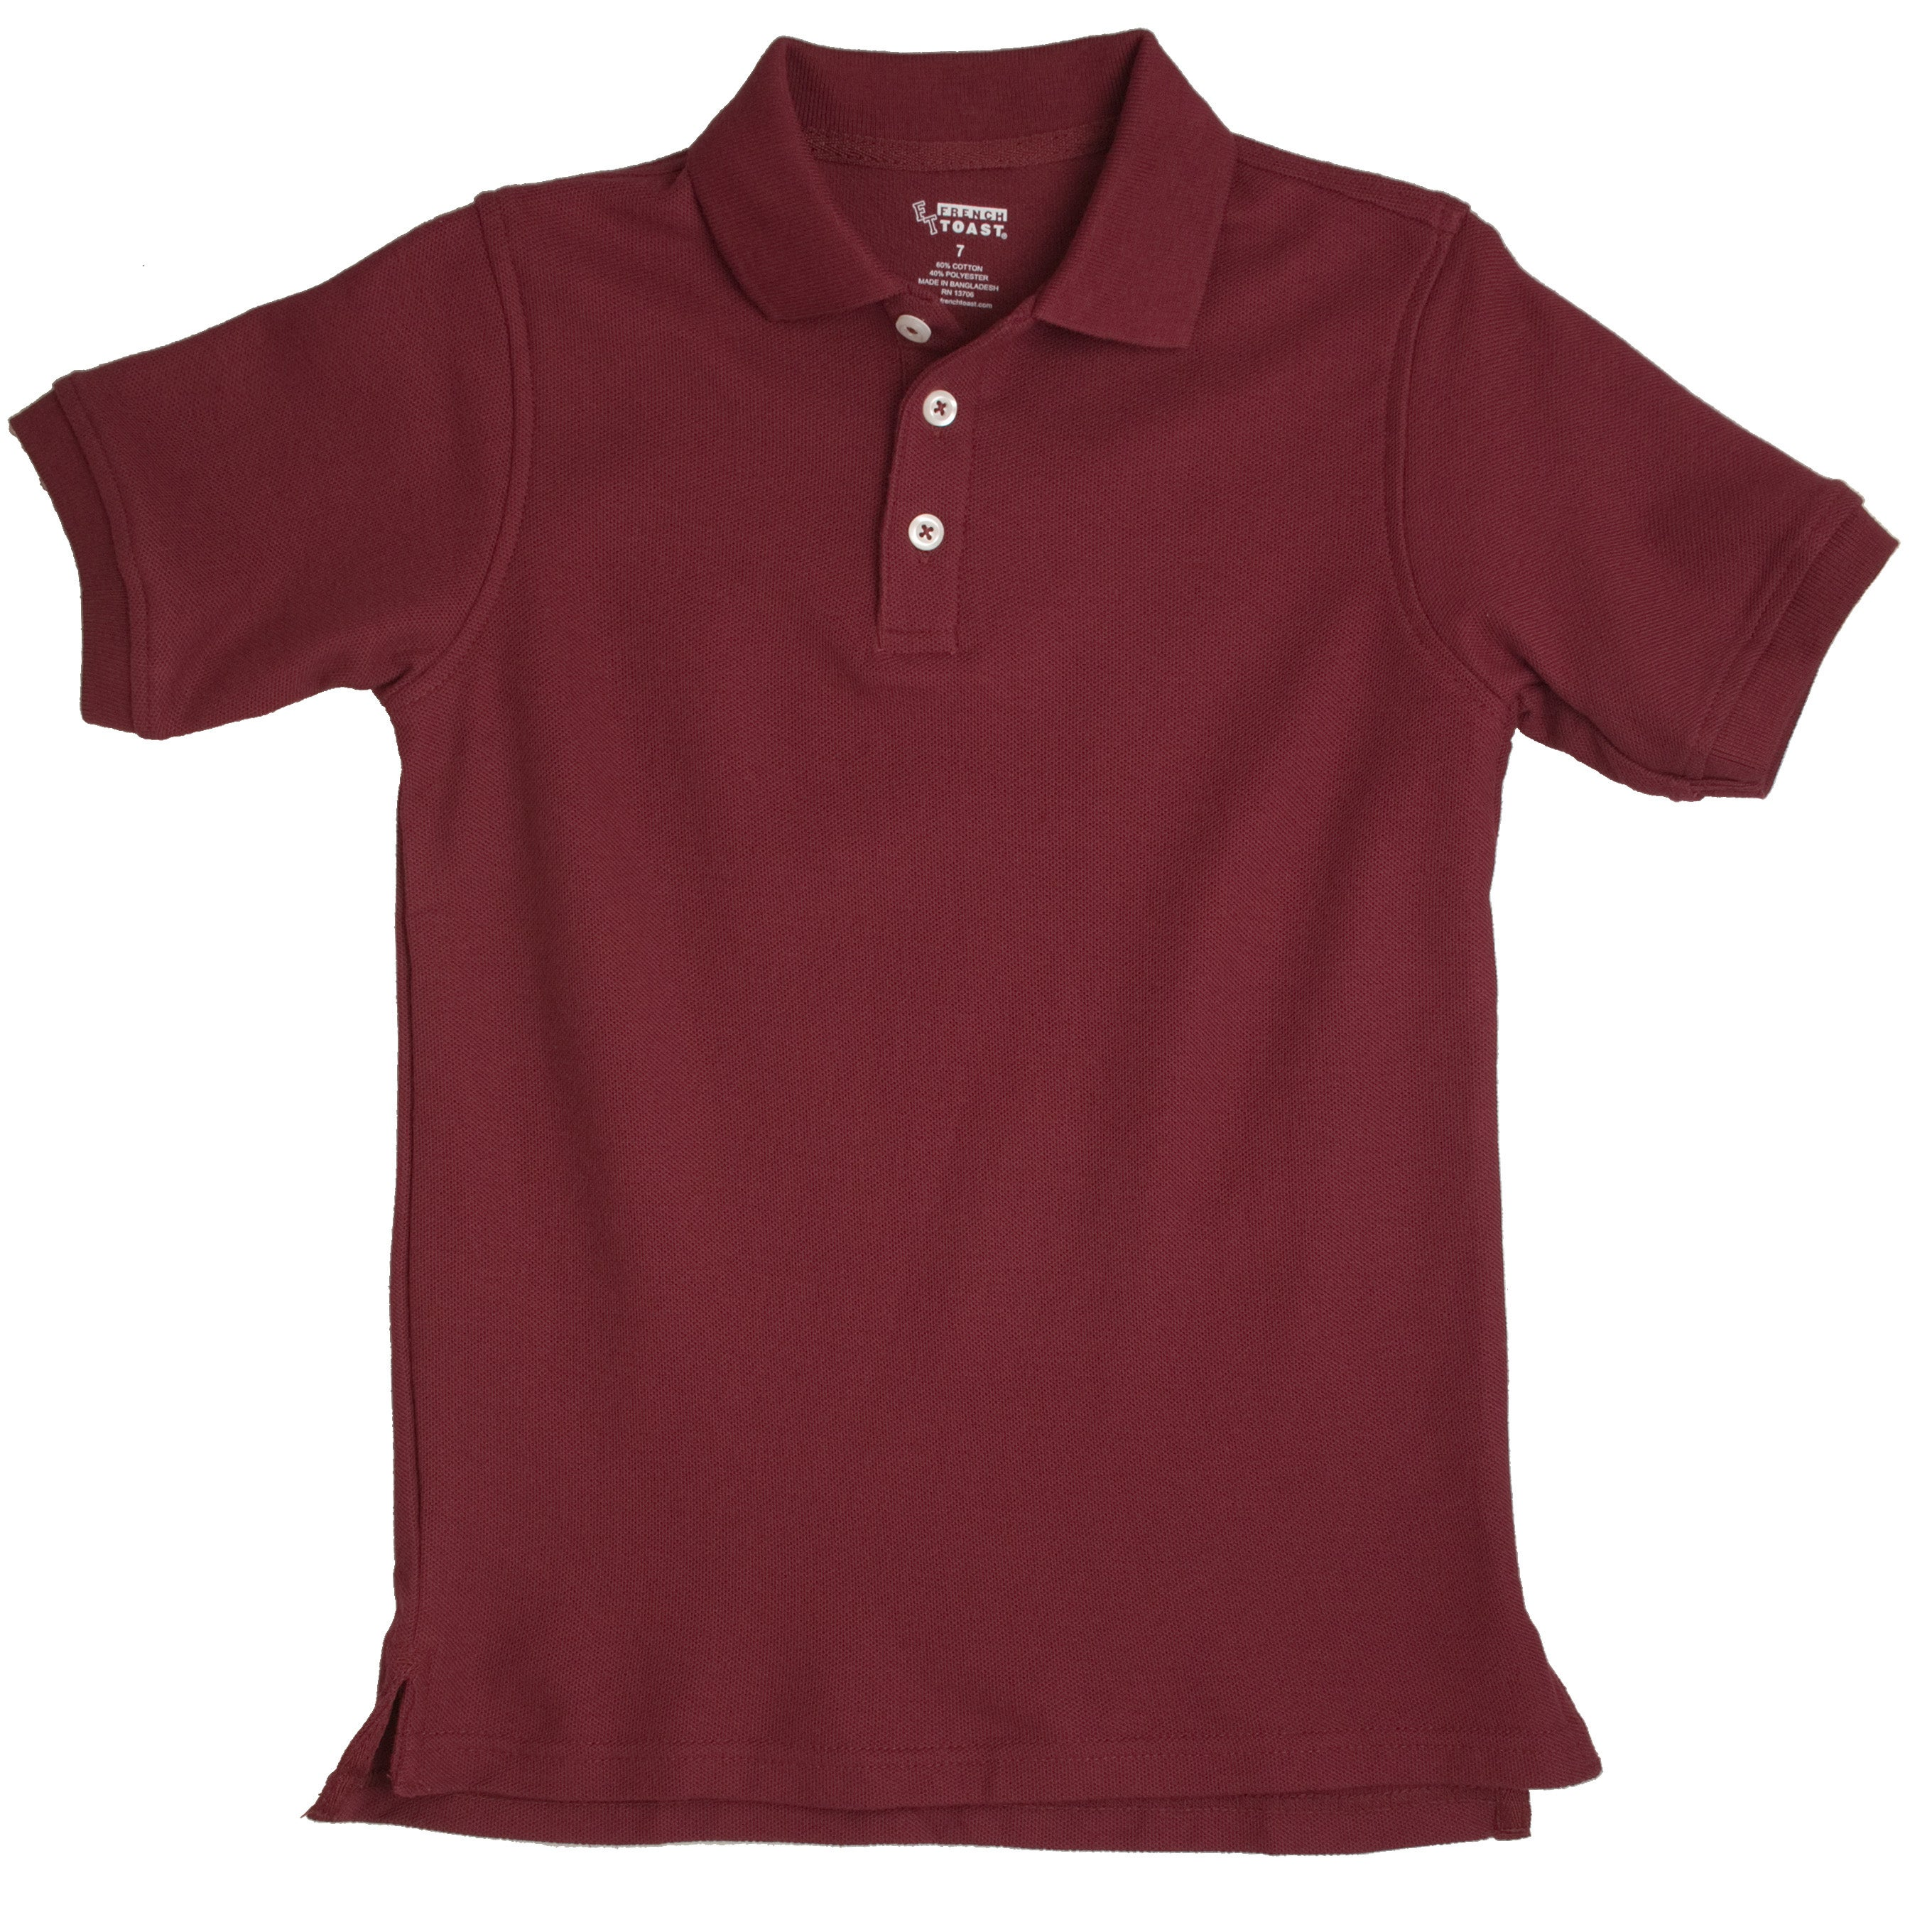 faaa9ff45 Shop French Toast Toddler Boys Burgundy Short Sleeve Pique Polo Shirt -  Free Shipping On Orders Over  45 - Overstock - 8224000